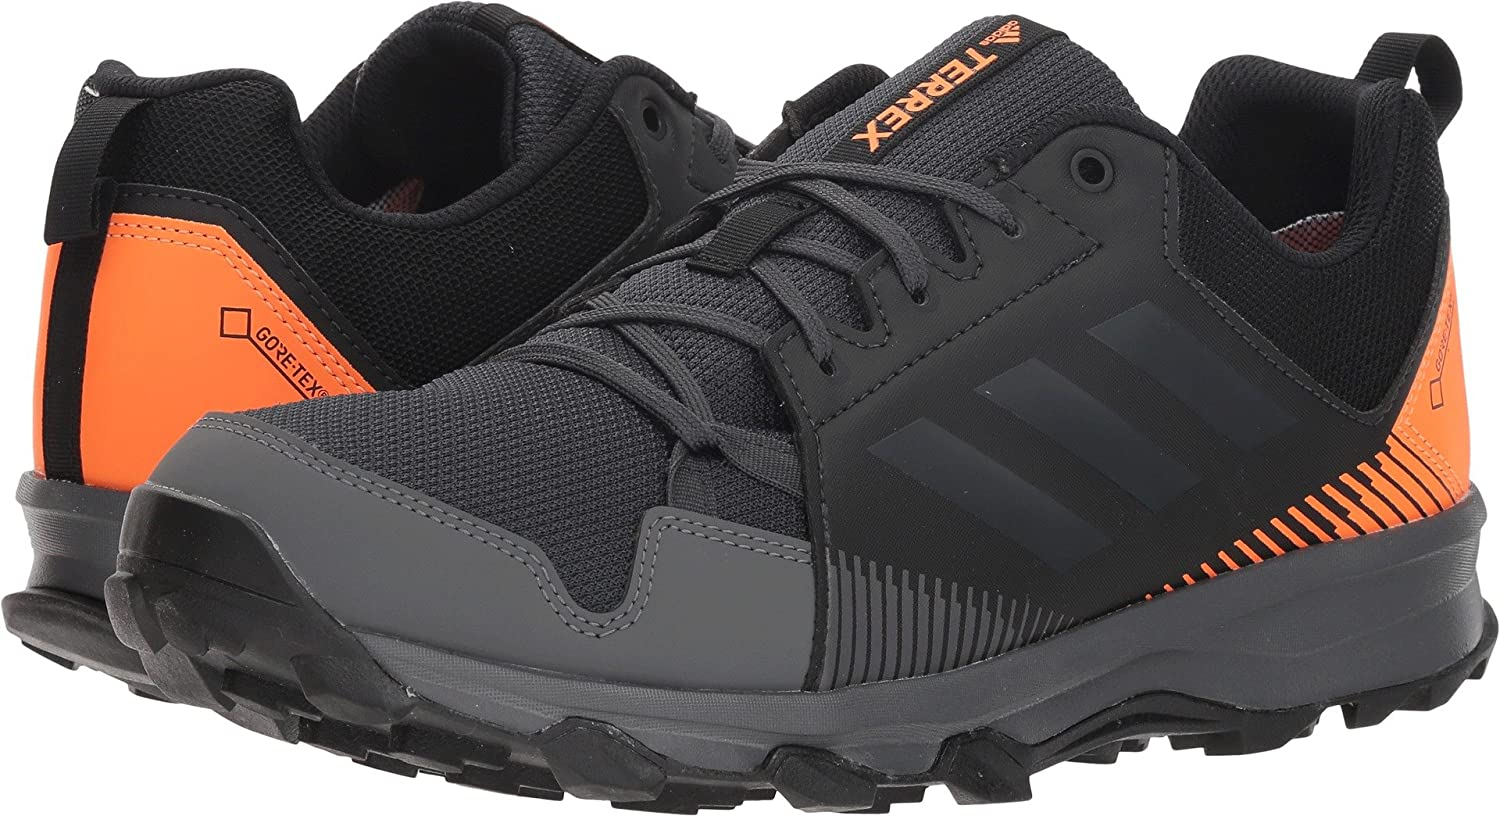 adidas outdoor Men's Terrex Tracerocker GTX Trail Running Shoe B078WFY4YJ 9 D(M) US|Black/Carbon/Hi-res Orange